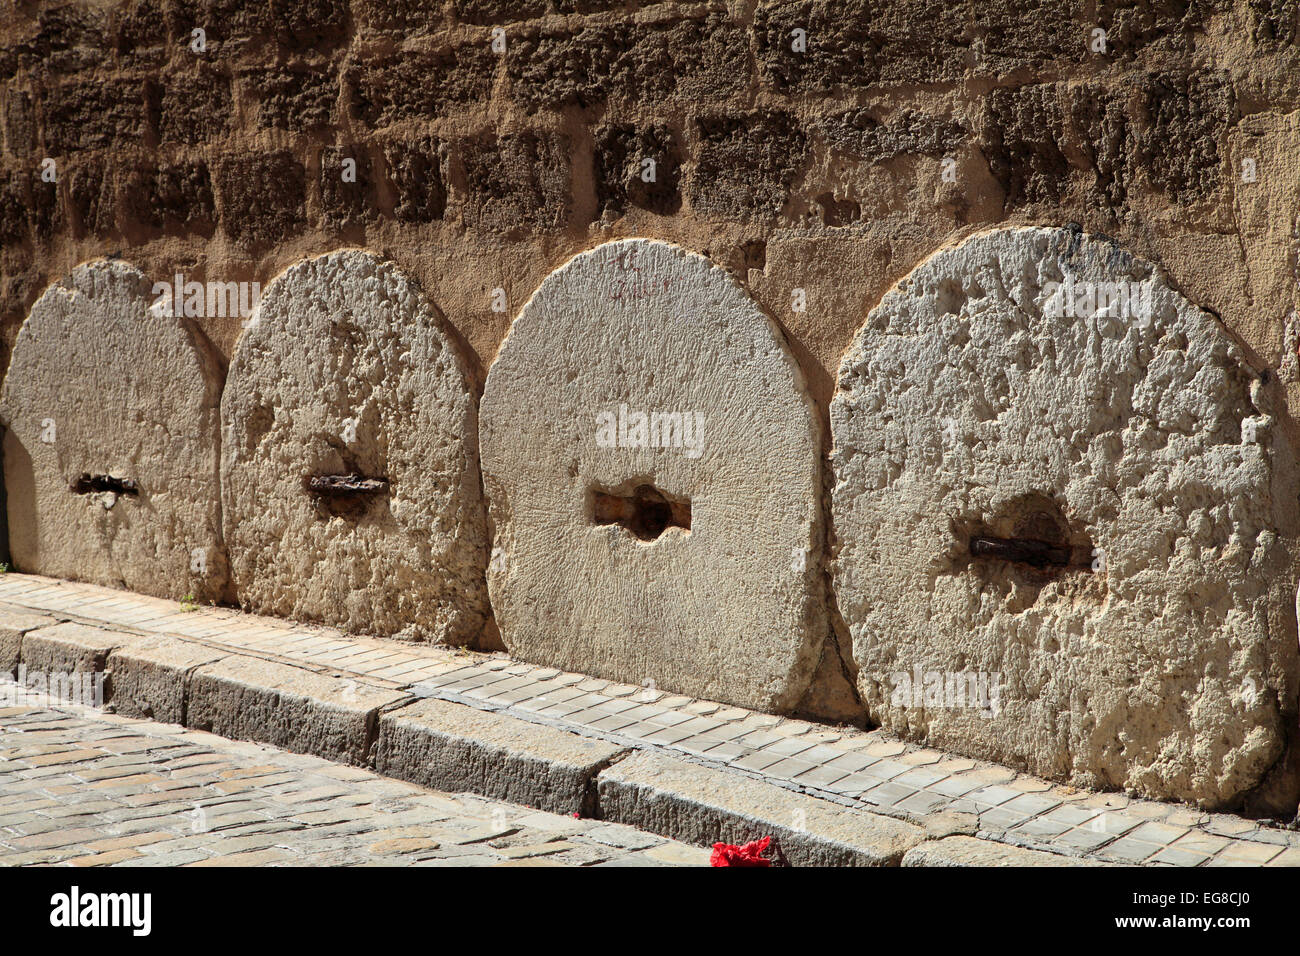 Spain, Andalusia, Seville, millwheels protecting wall, street scene, - Stock Image